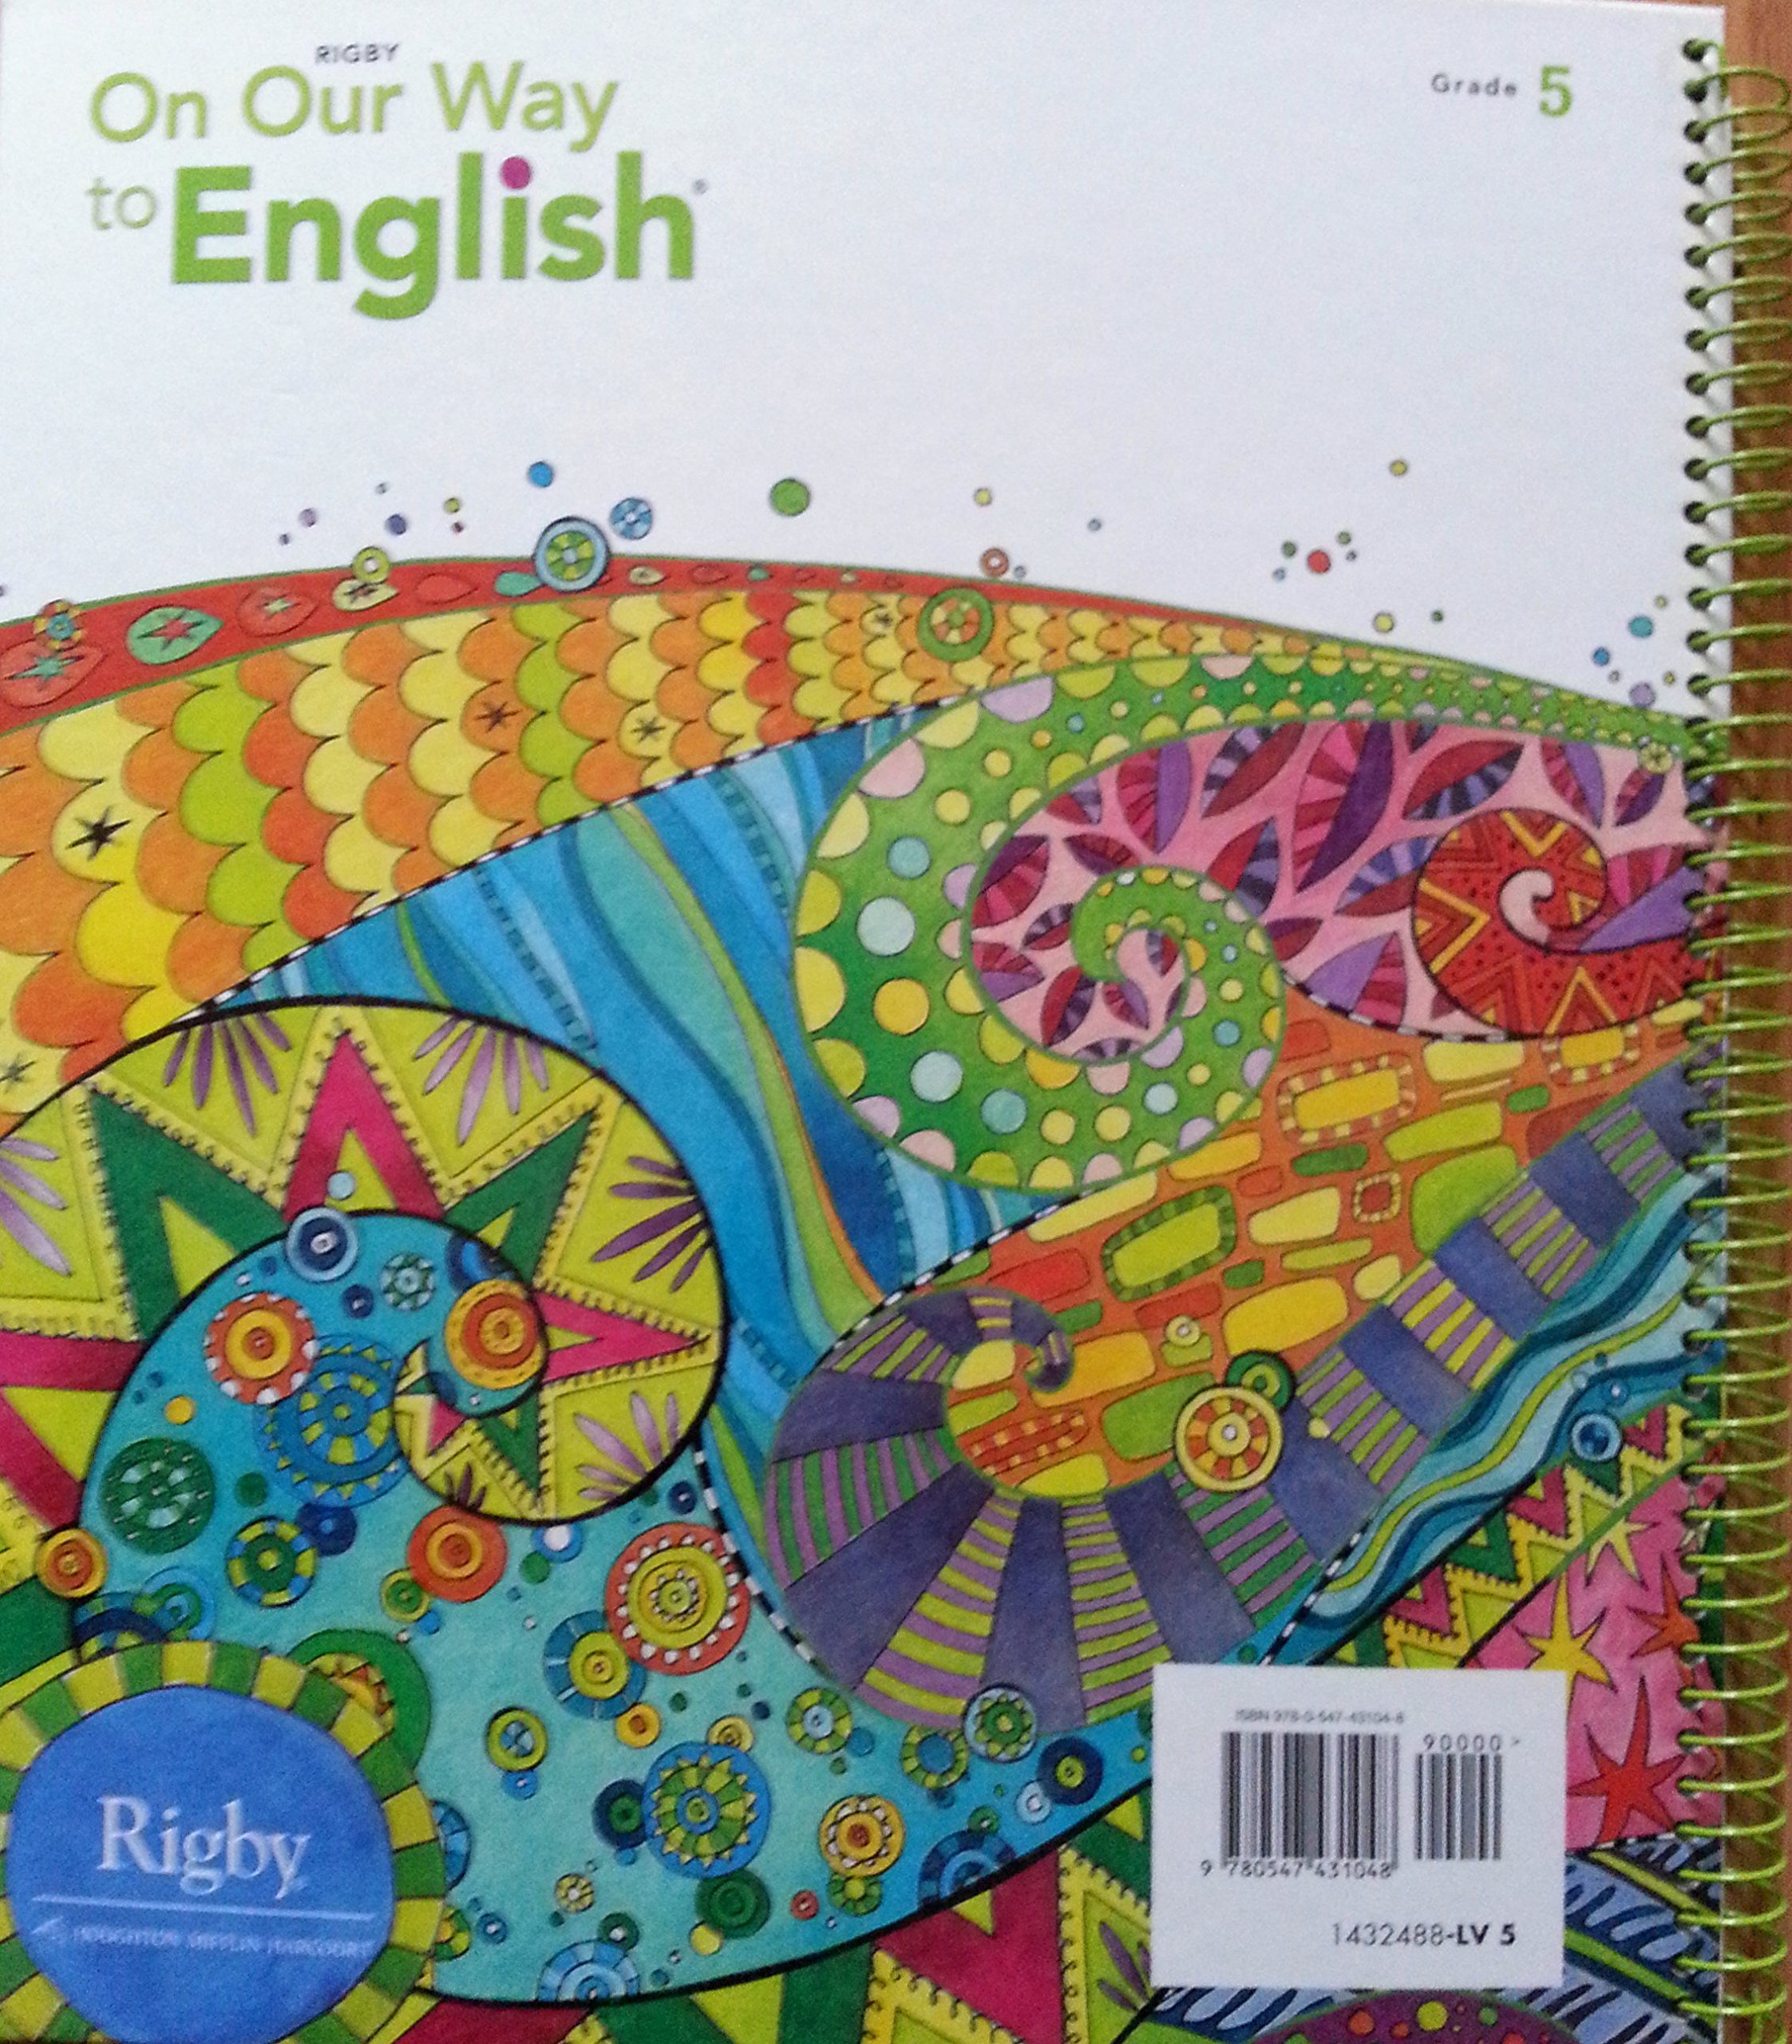 On Our Way to English Leveled Reading TX Teacher's Guide, grade 5: Rigby:  9780547431048: Amazon.com: Books